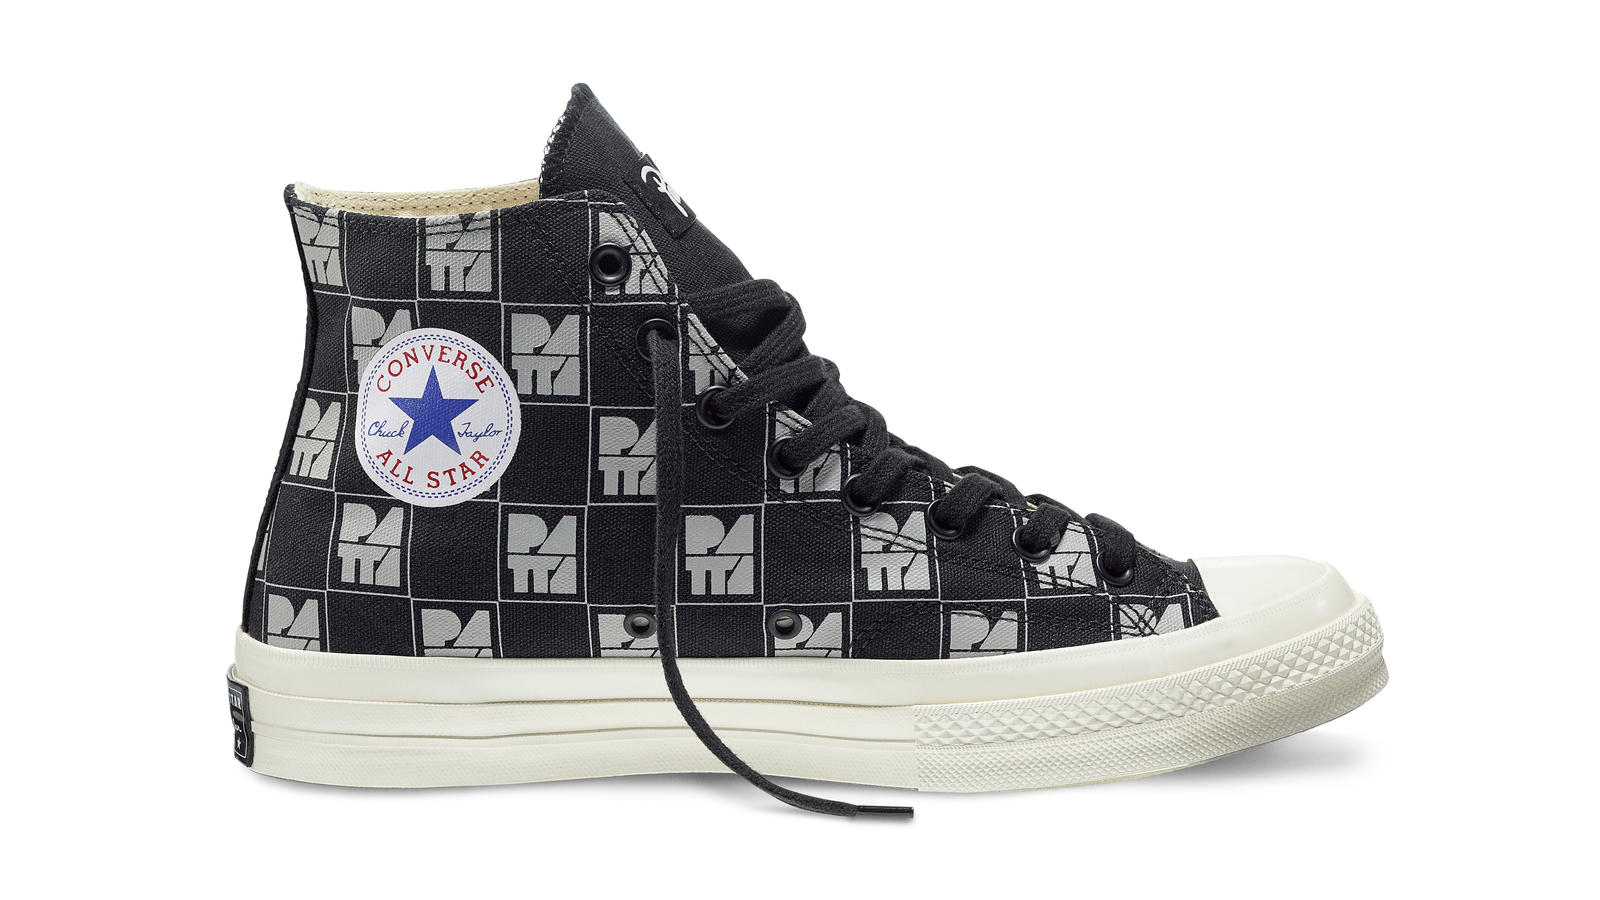 Converse All Star Ct70 Patta10 Black Gray Original